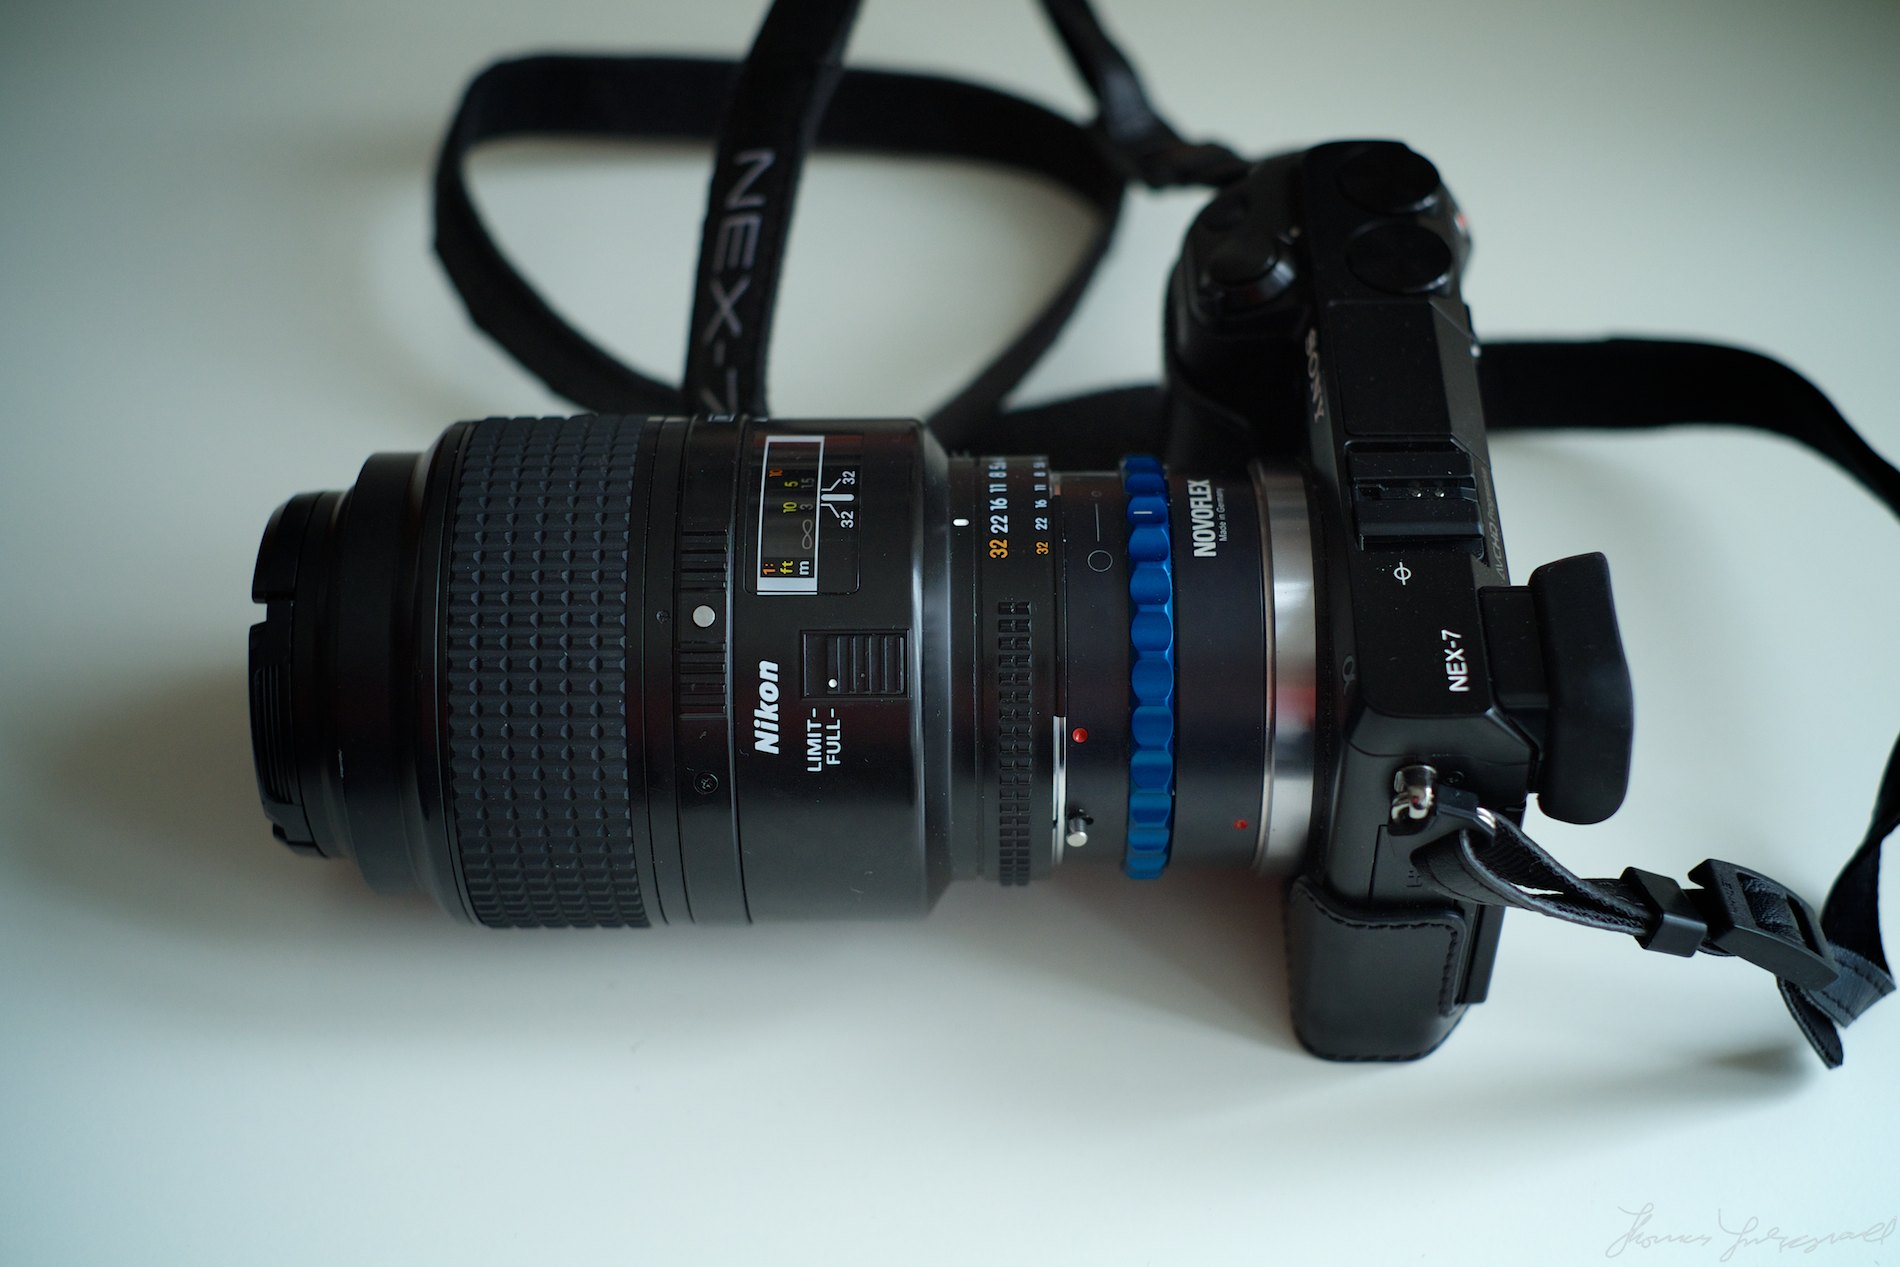 Nikon 105mm Macro on Sony Nex 7